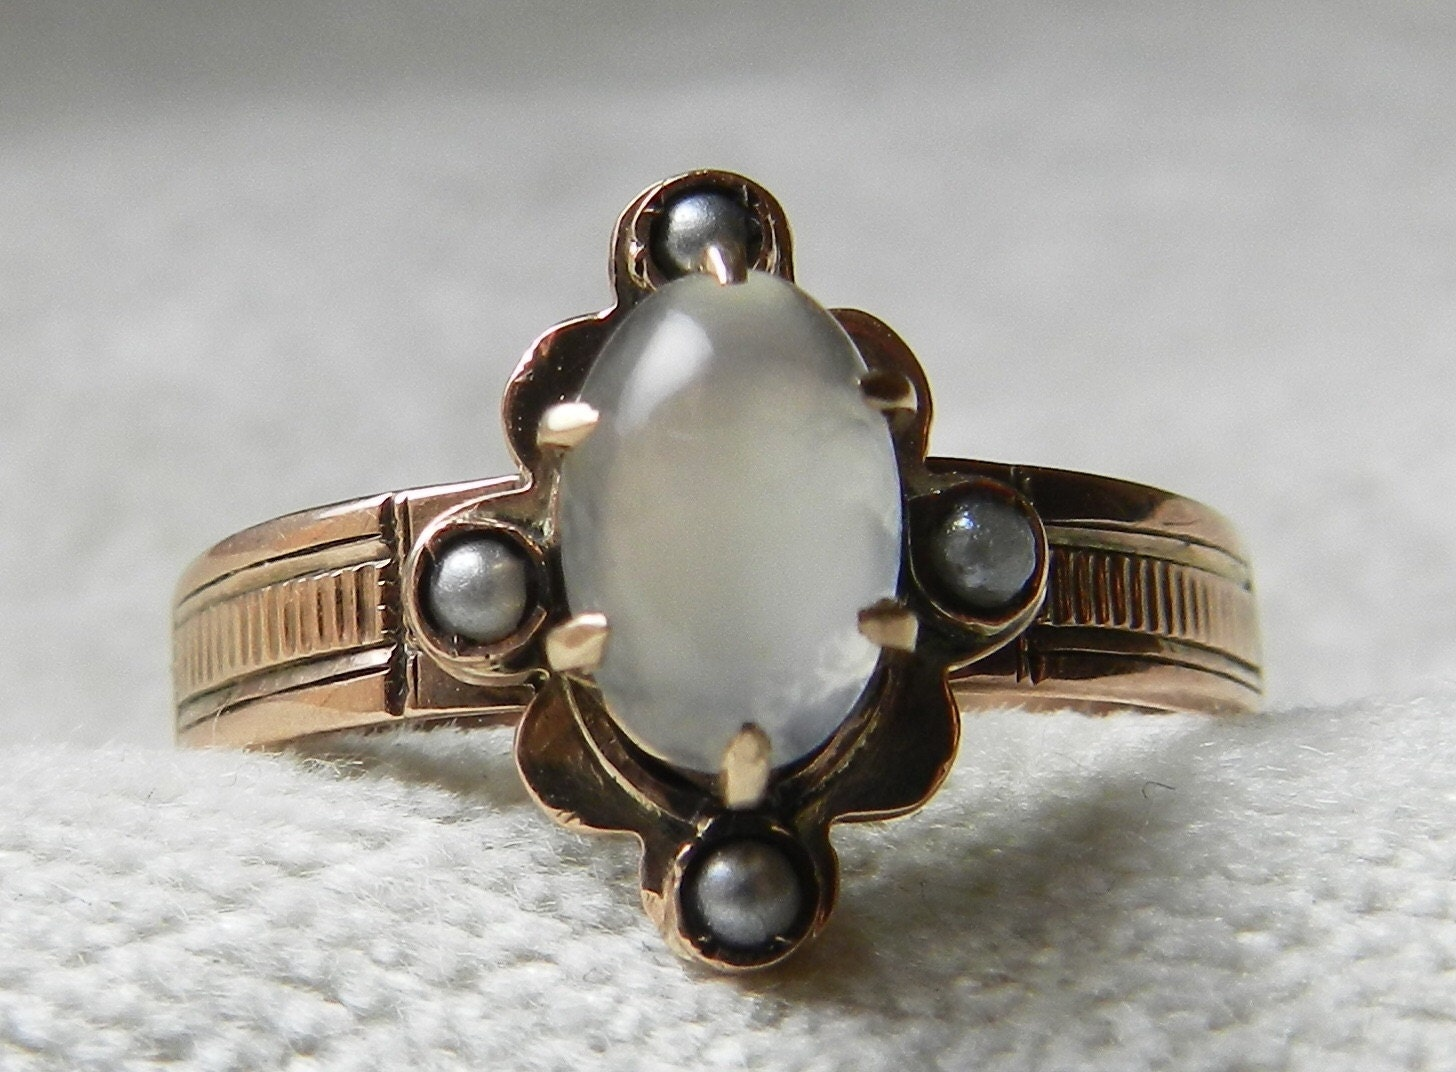 Moonstone Engagement Ring Gold 14K 1800s Victorian Rose Gold